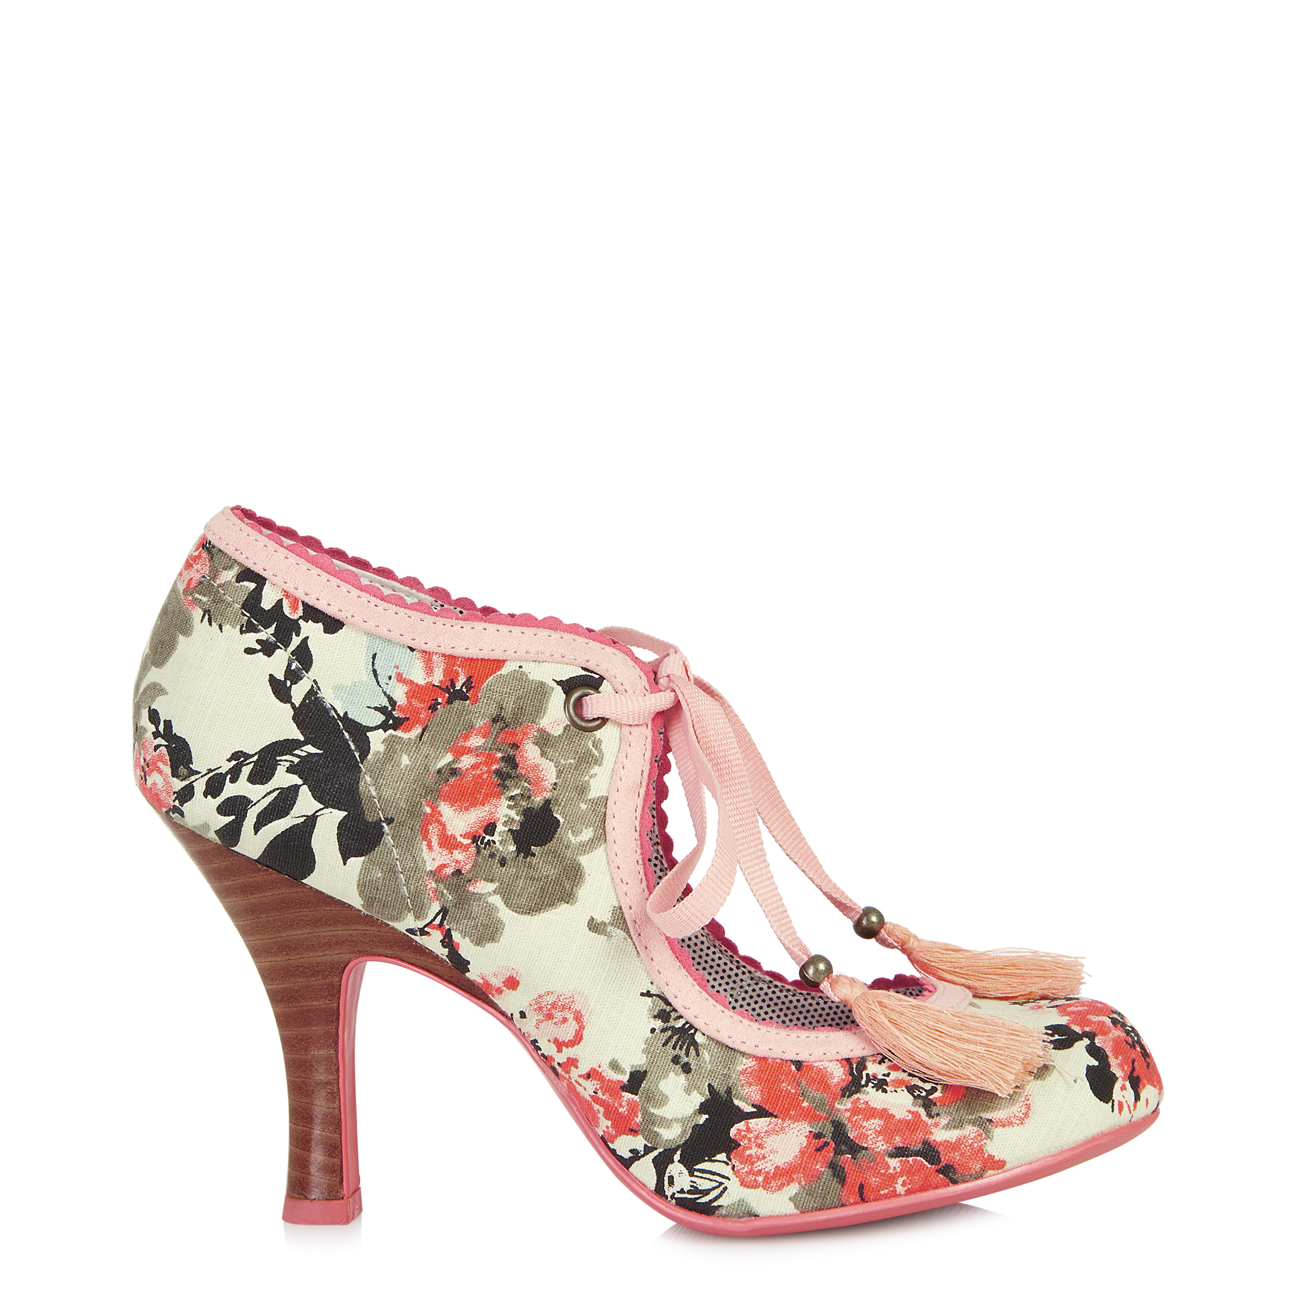 NEW Ruby Shoo Willow Shoe UK3-9 Blue EU36-42 Red Tulip / Blue UK3-9 Peach Coral Aqua Floral 8ead8a